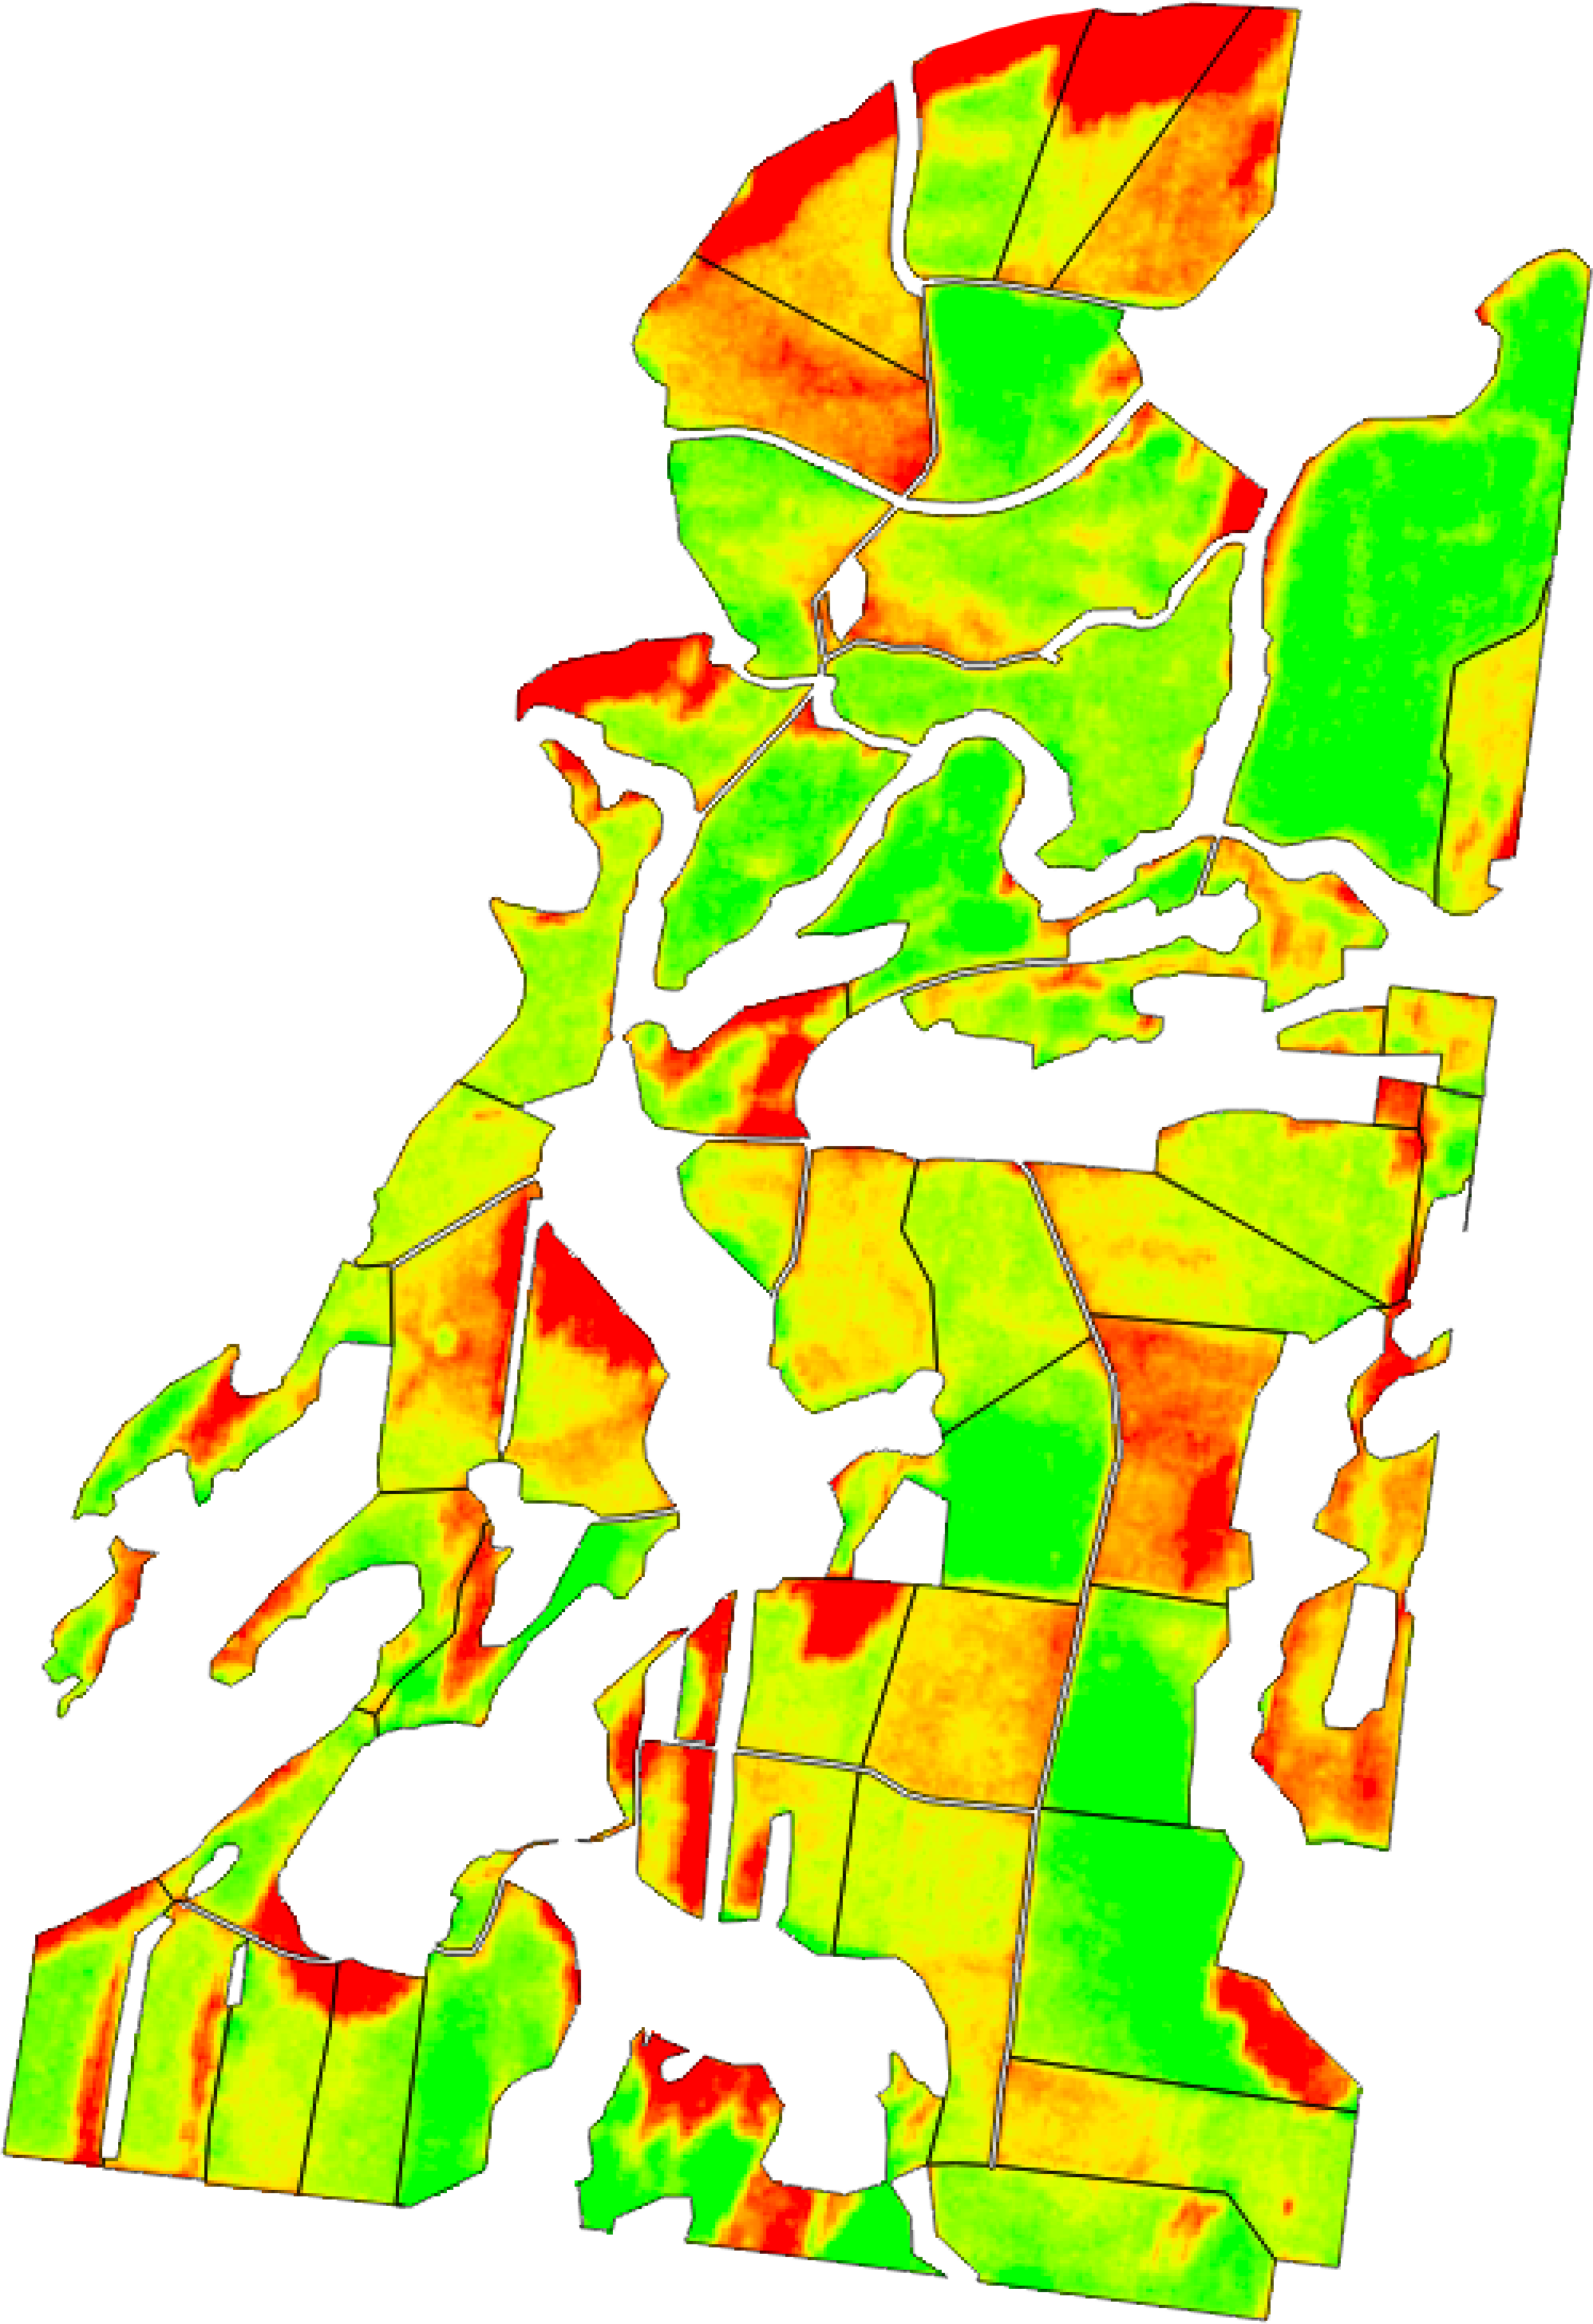 NDVI snapshot of a farm's pasture